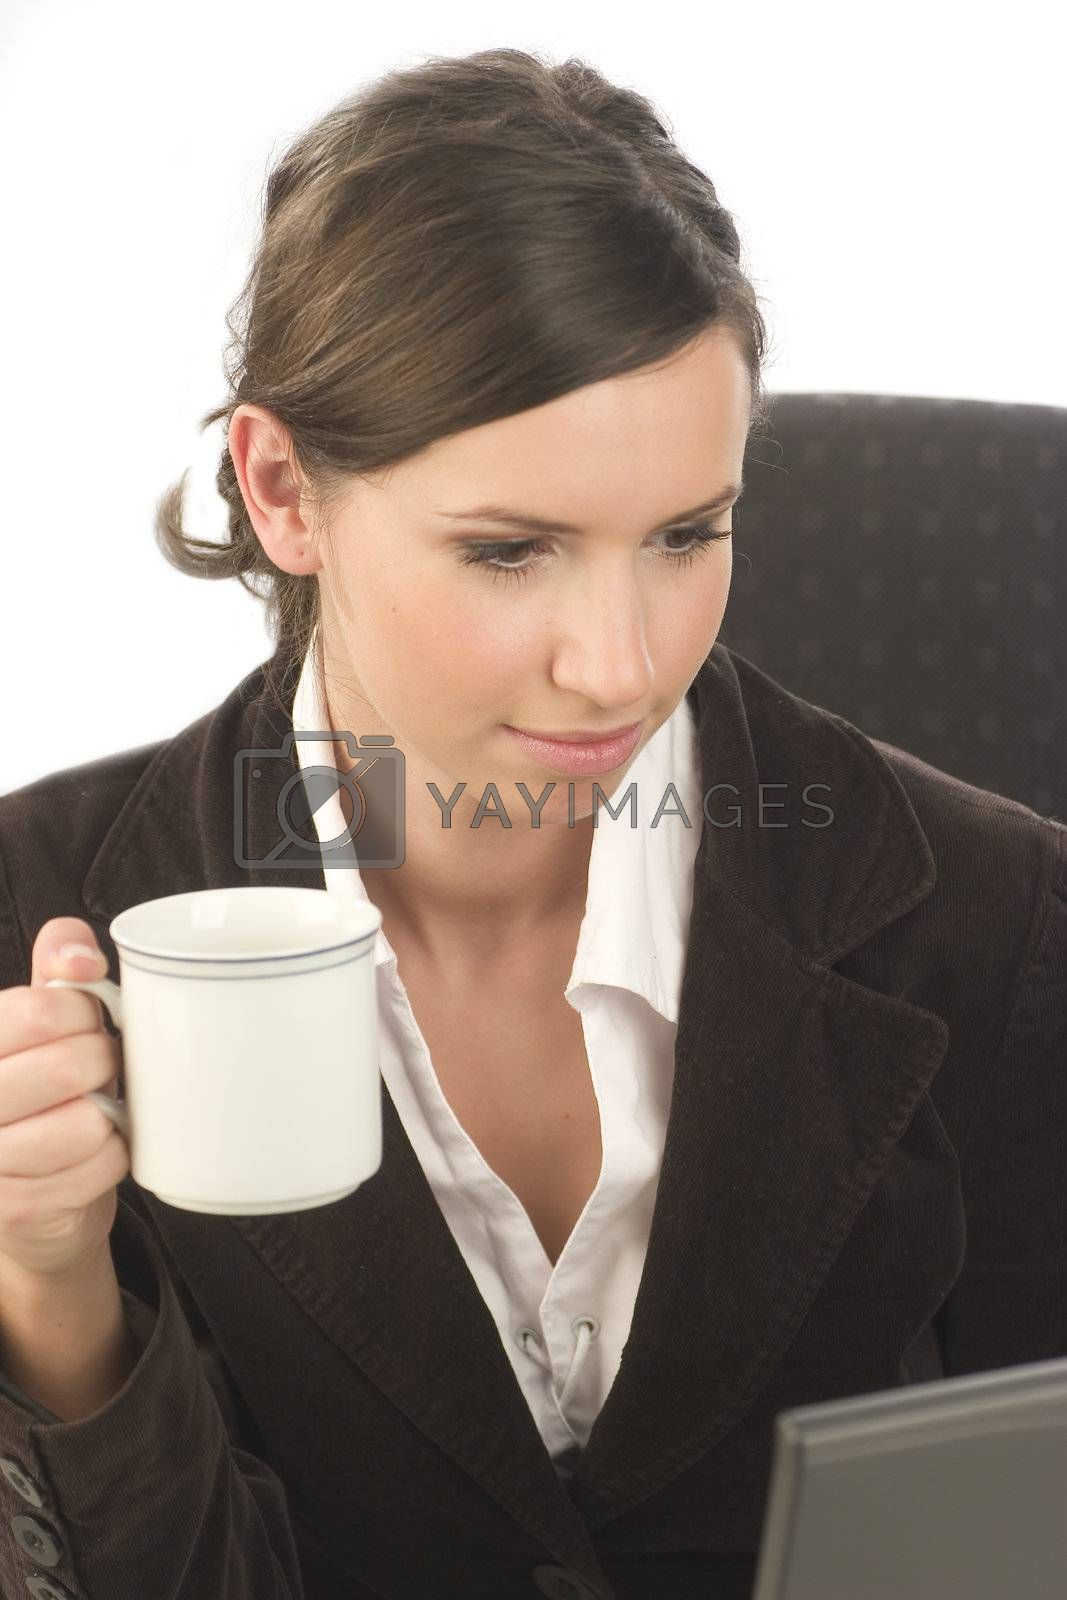 Young attractive woman with a cup of coffee in her hand looking at the screen of a laptop